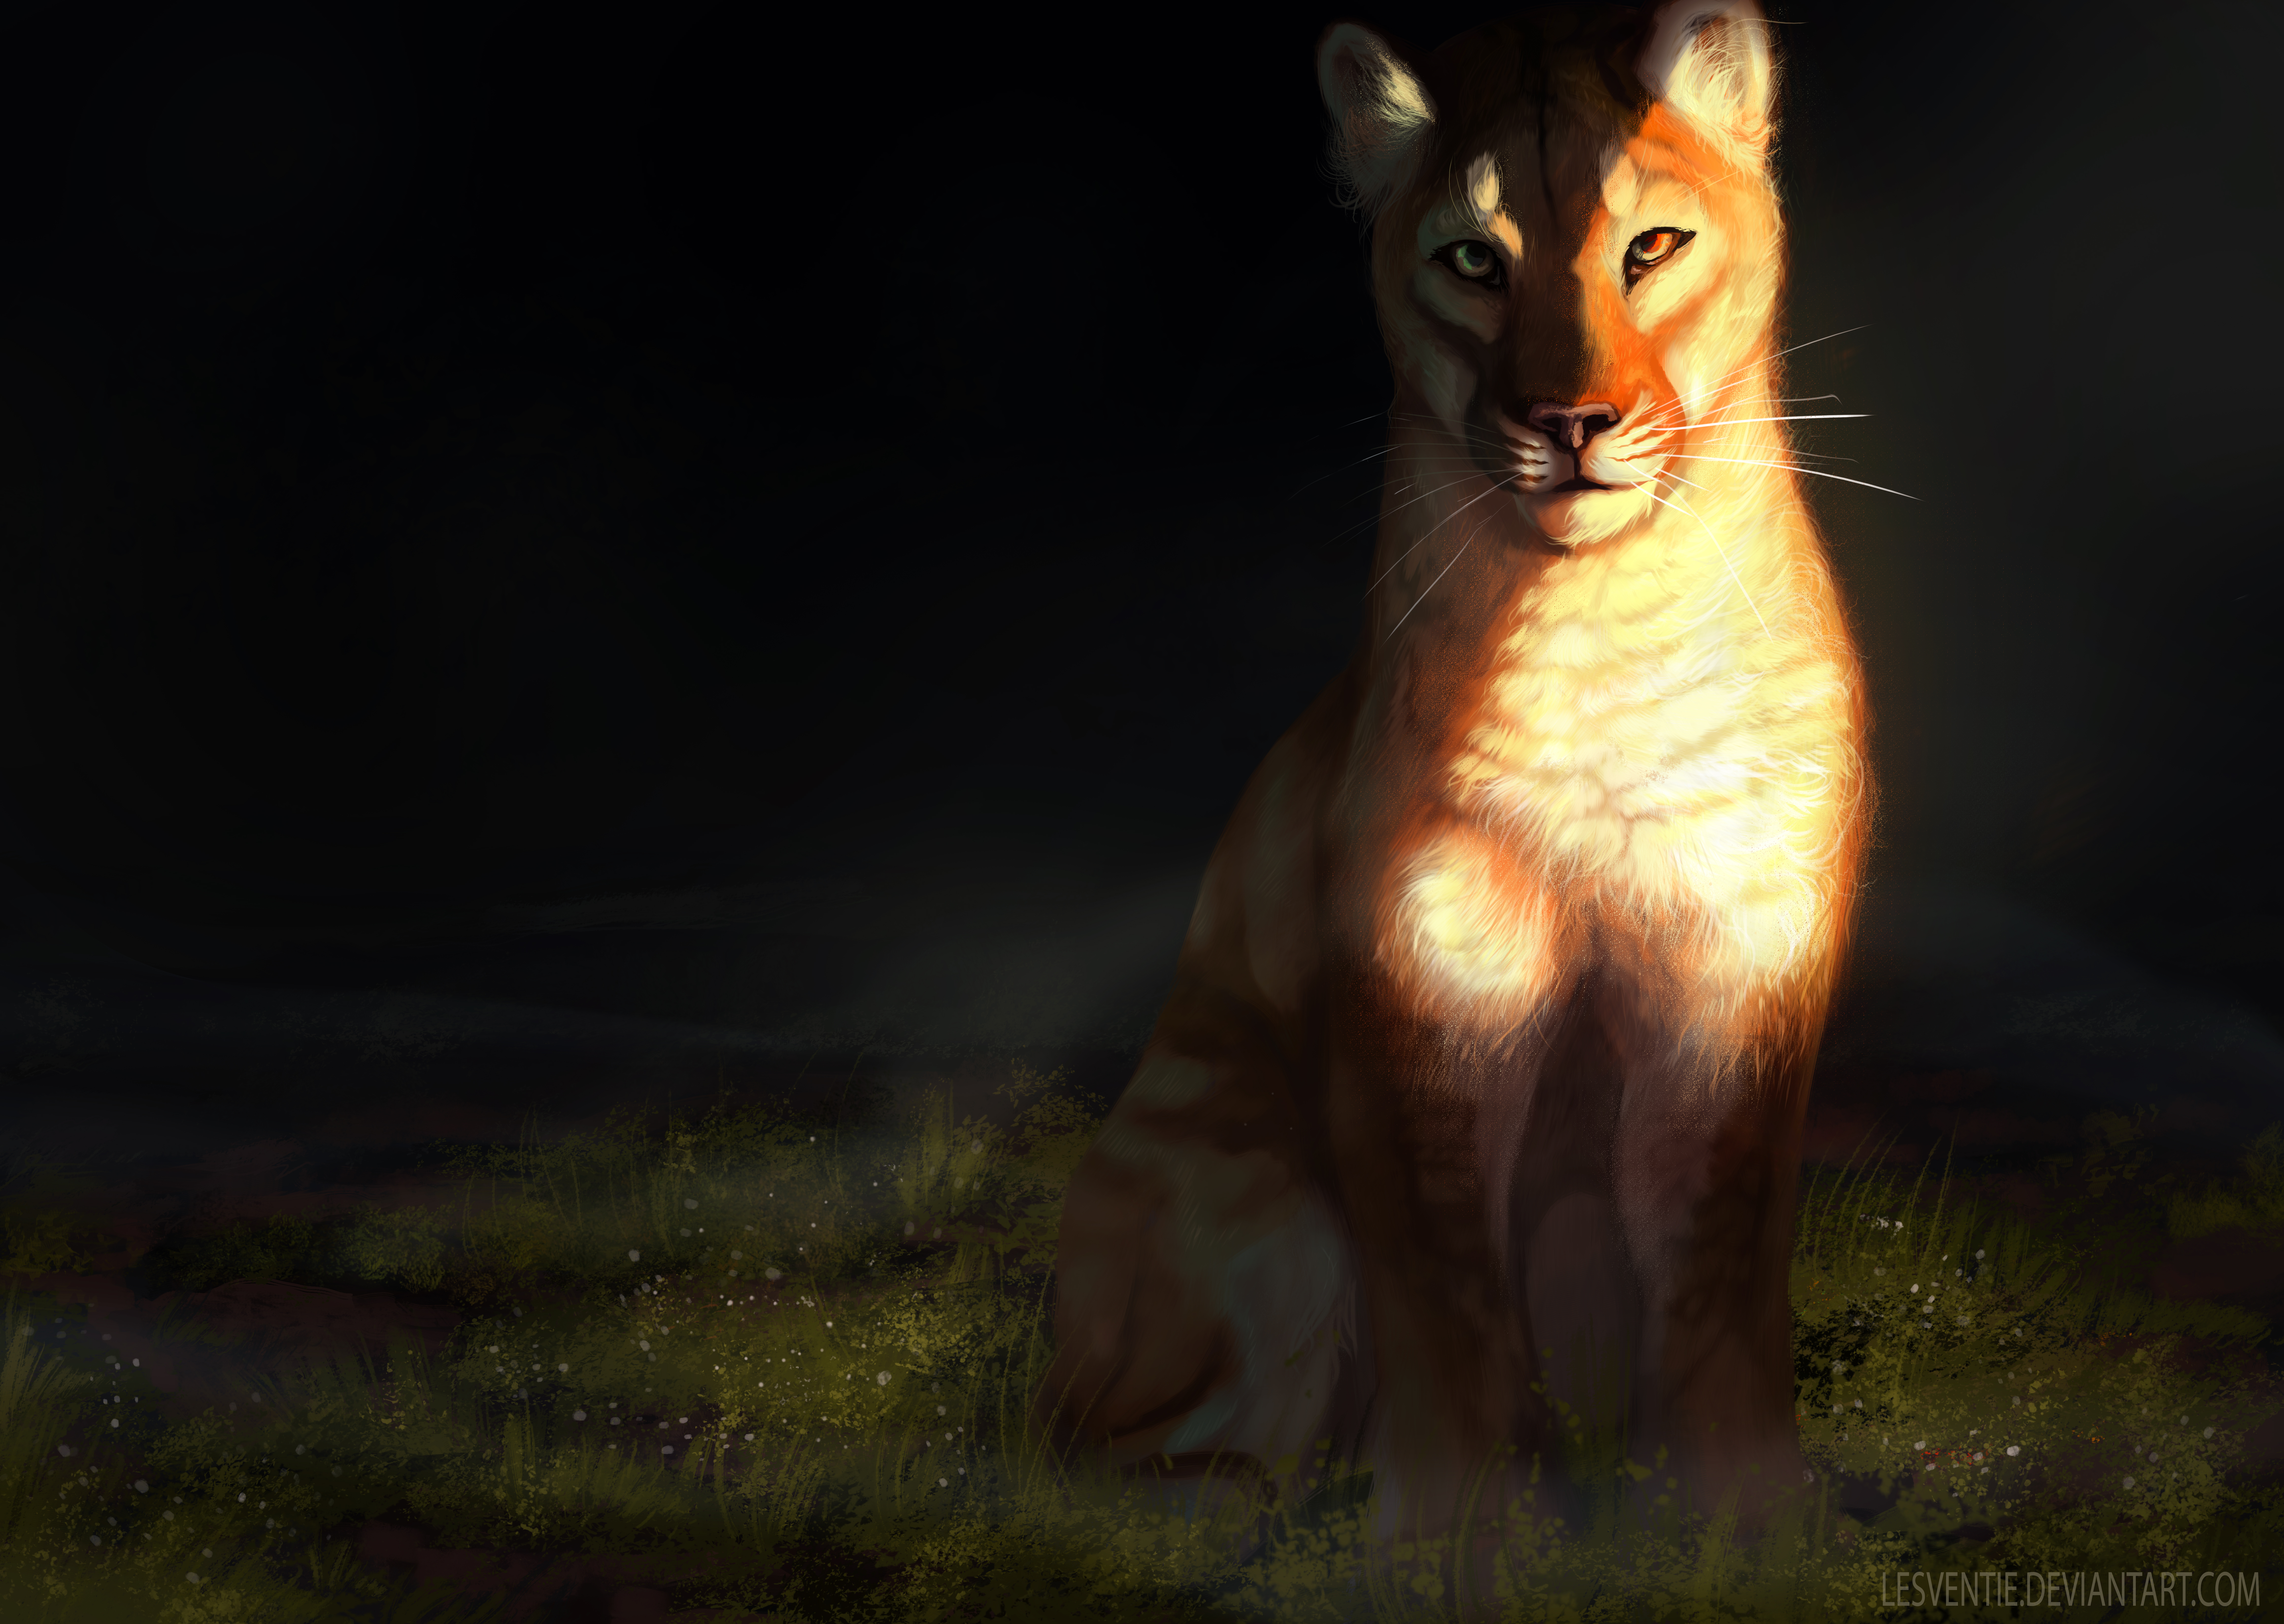 131334 download wallpaper Lioness, Big Cat, Sight, Opinion, Art screensavers and pictures for free